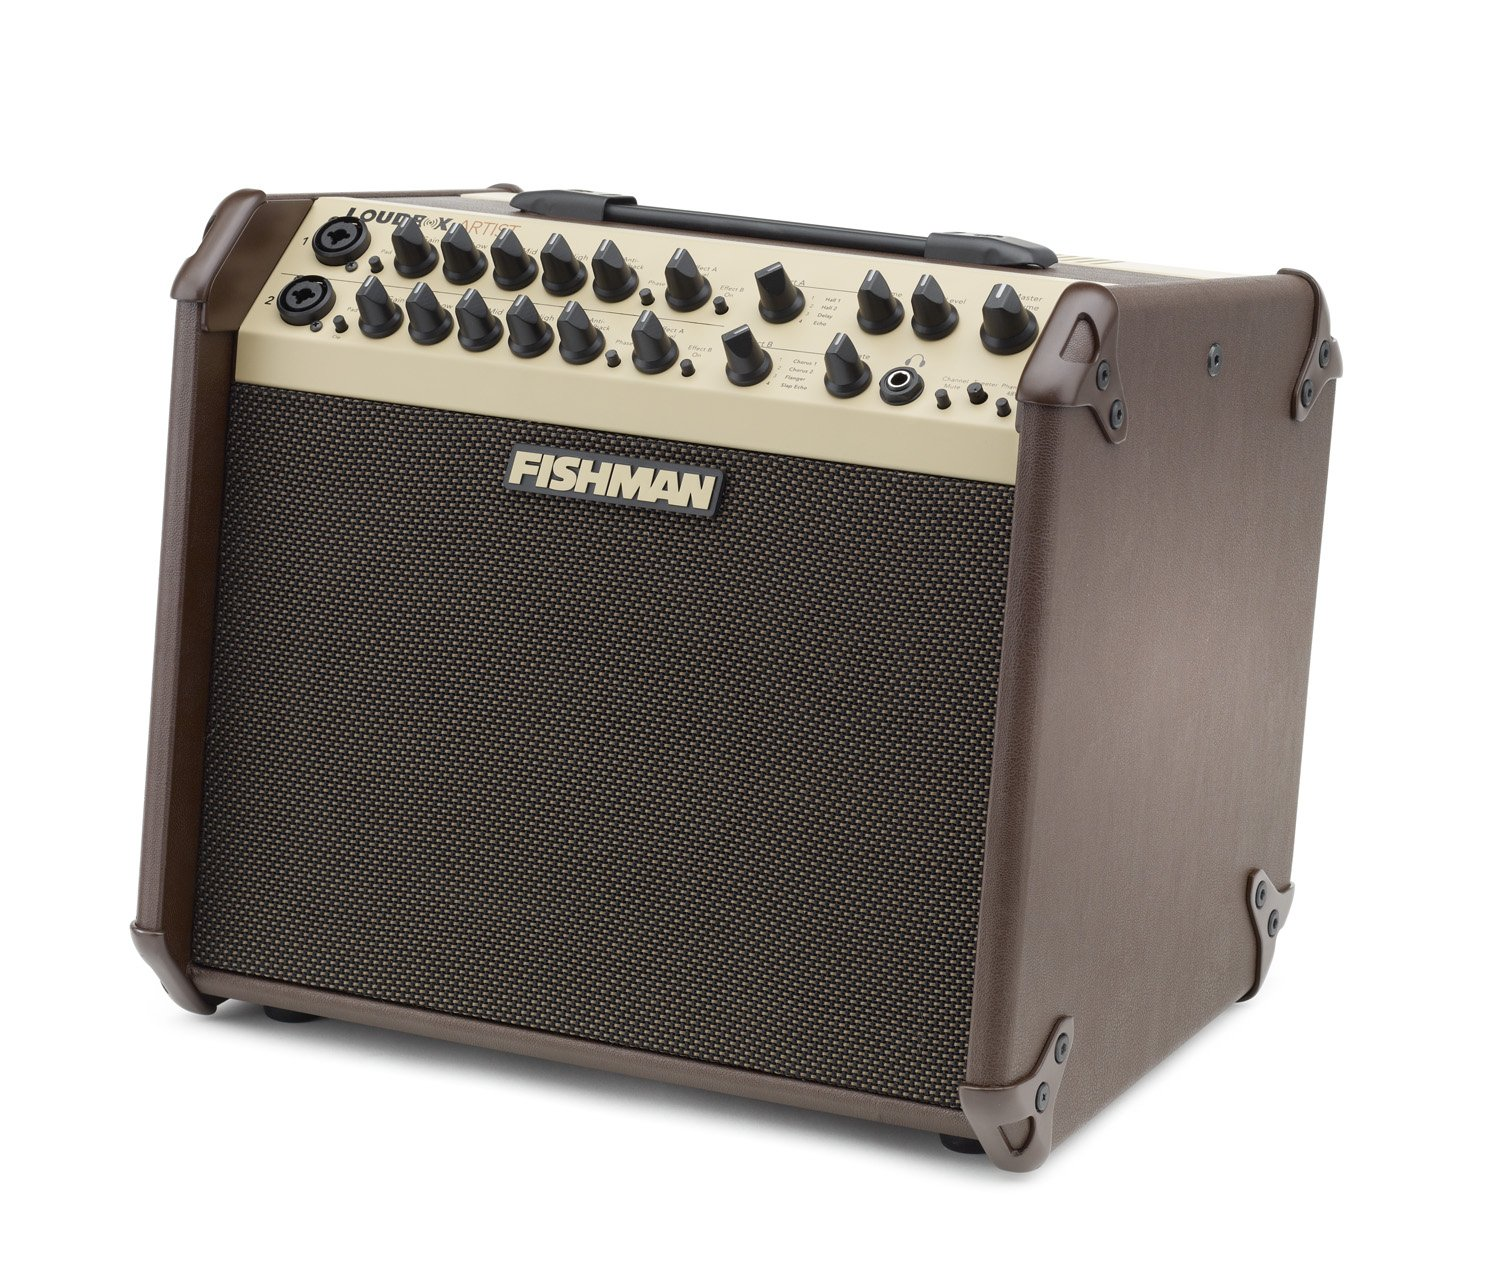 Fishman Loudbox Artist Acoustic Instrument Amplifier by Fishman